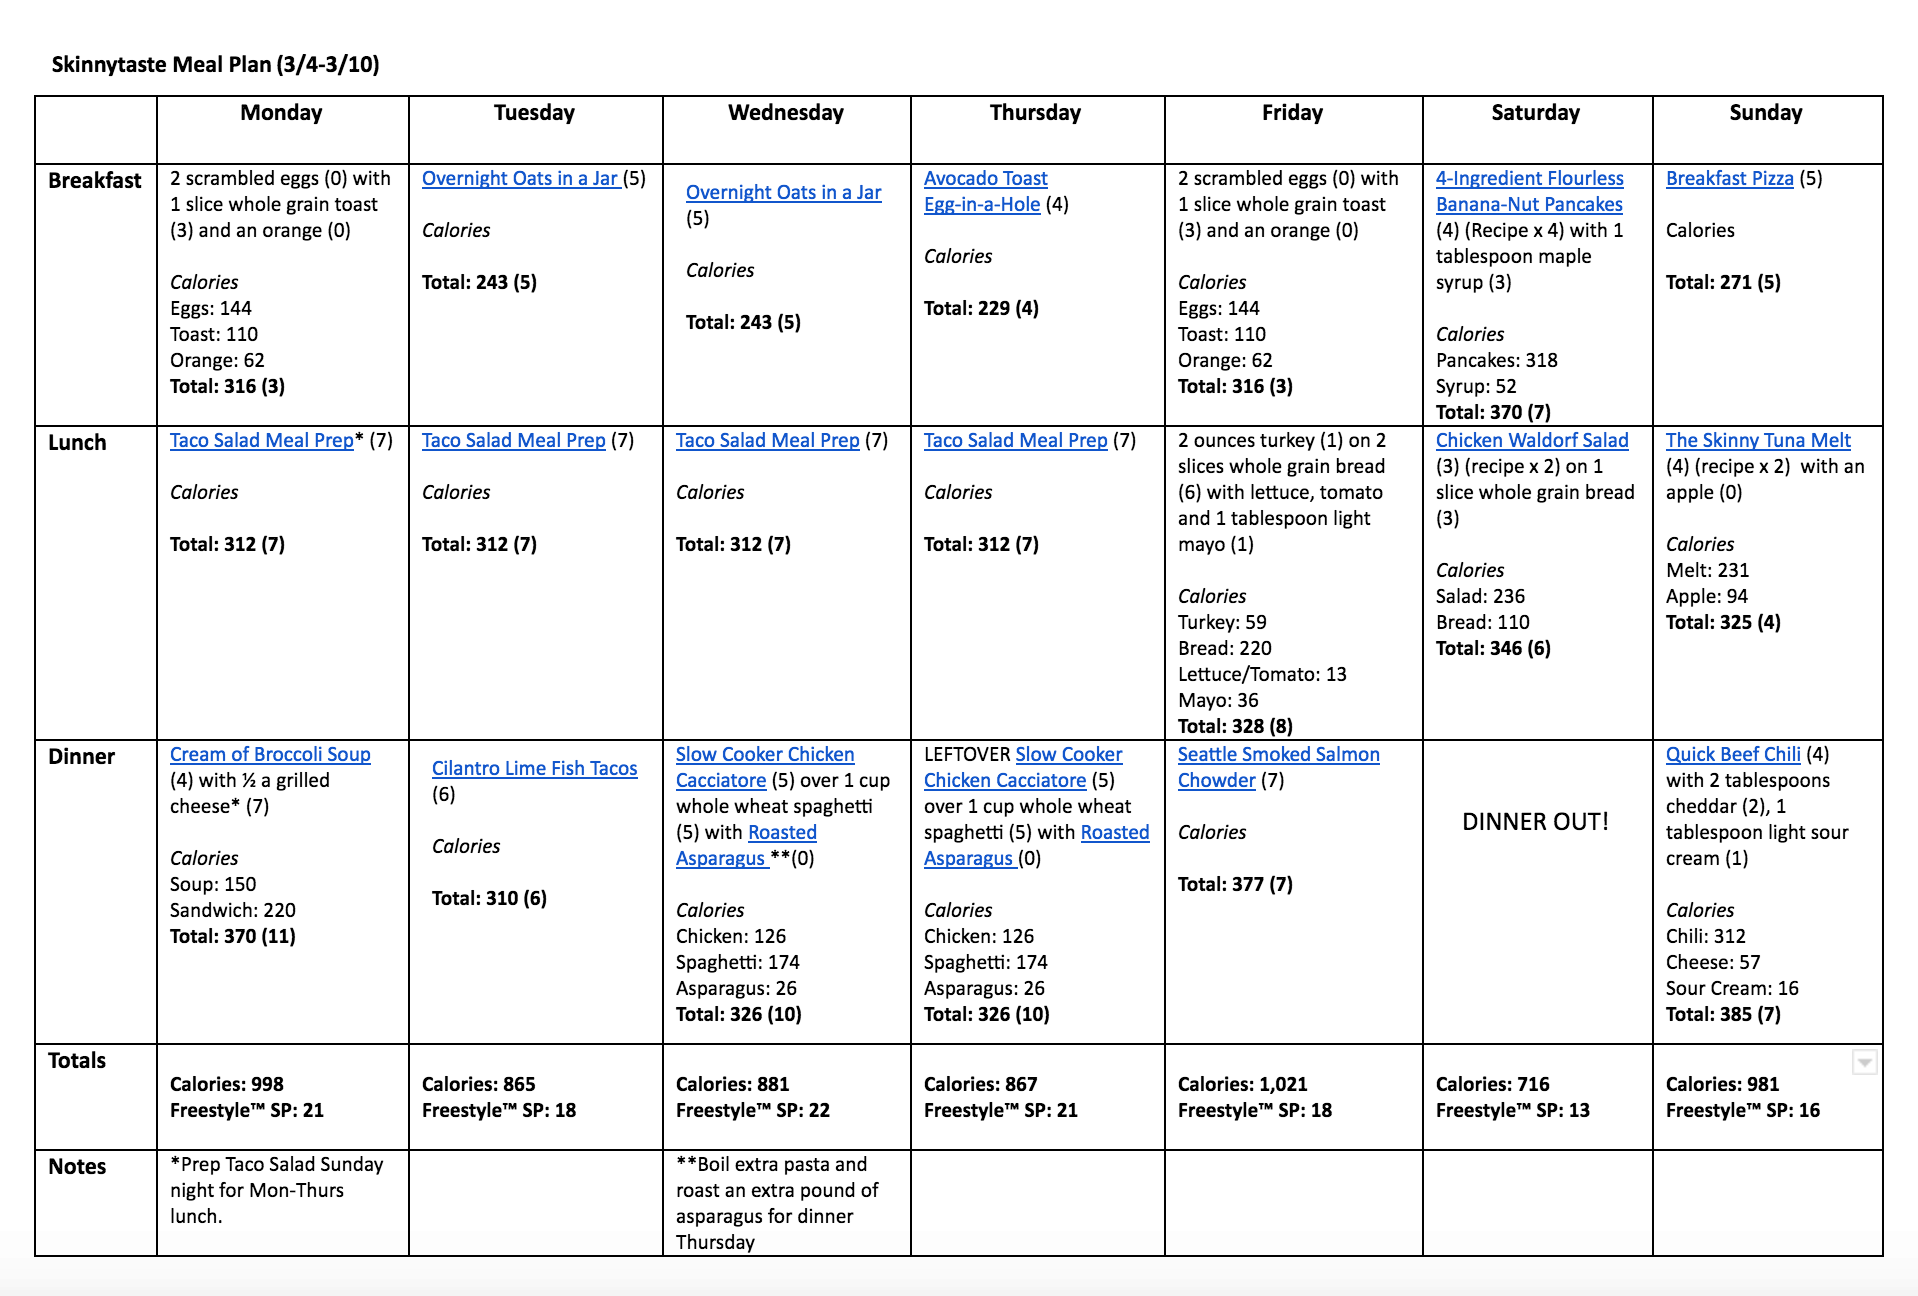 Skinnytaste Meal Plan (March 4-March 10)